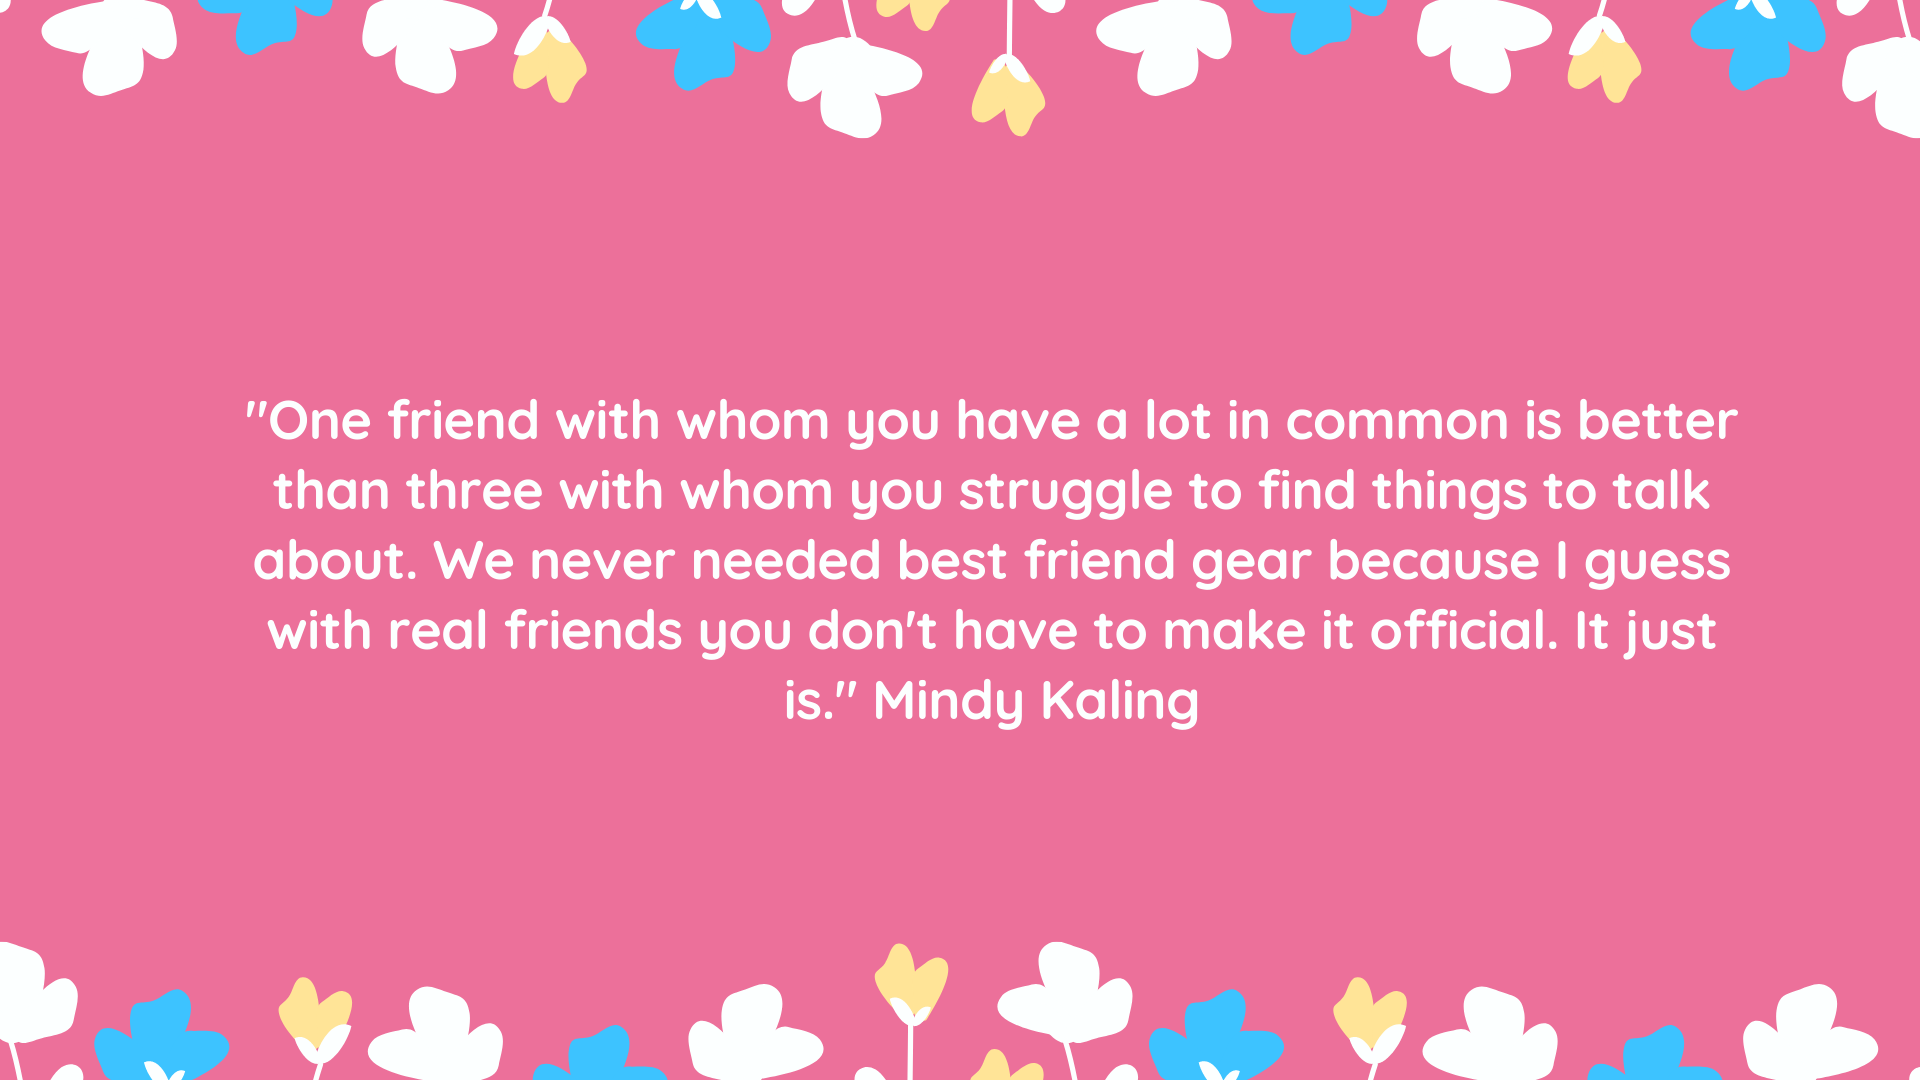 """""""One friend with whom you have a lot in common is better than three with whom you struggle to find things to talk about. We never needed best friend gear because I guess with real friends you don't have to make it official. It just is."""" Mindy Kaling"""